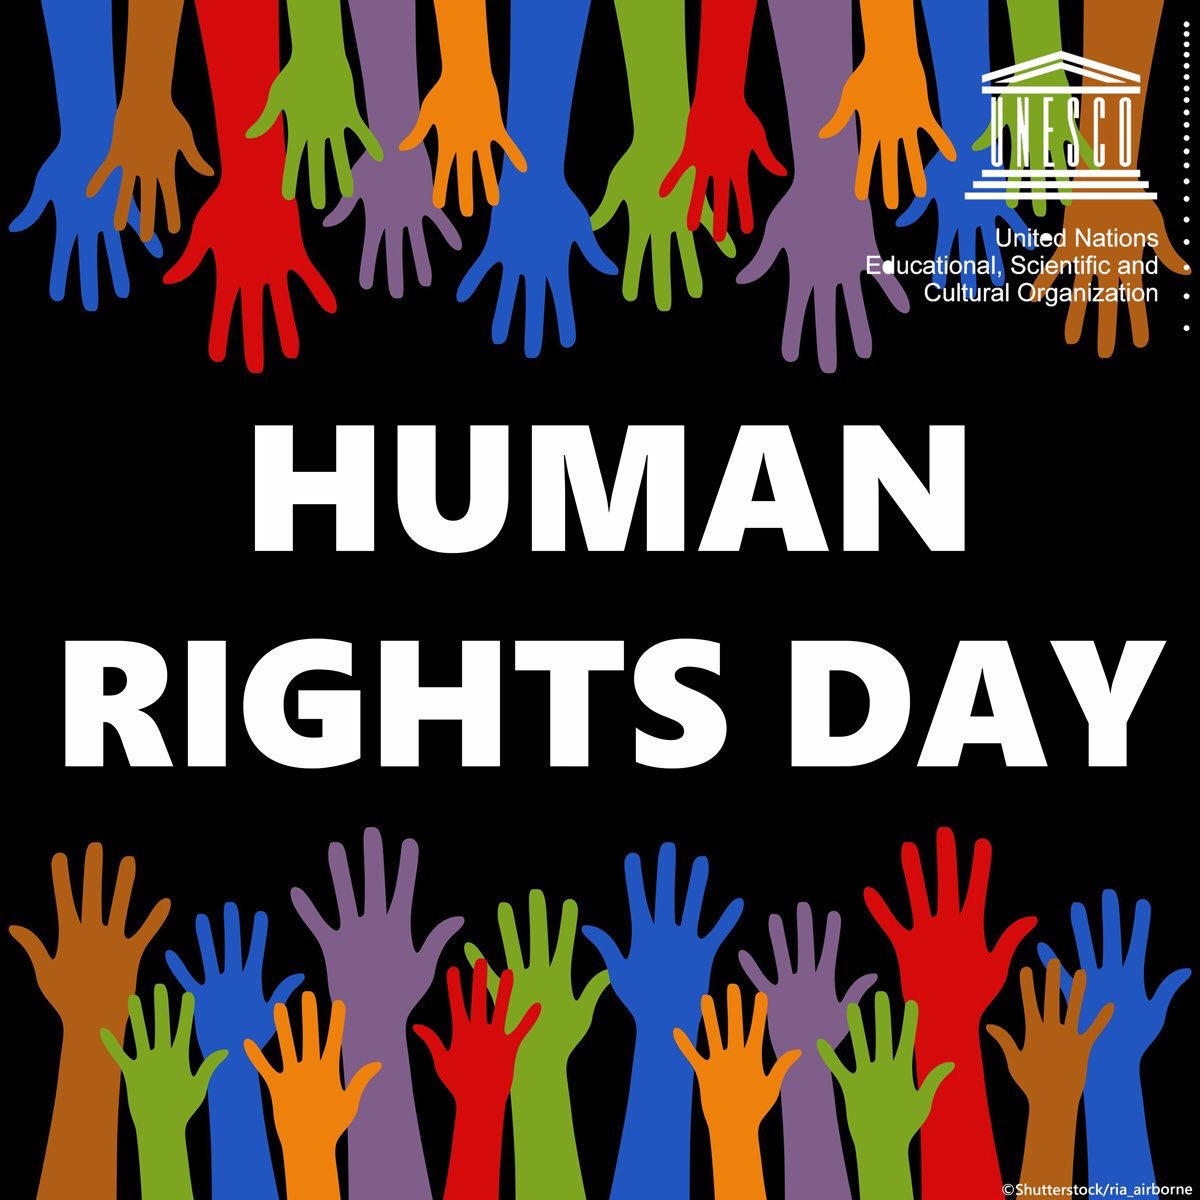 #HumanRightsDay  Standing up for the rights of others means standing up for the humanity we share. @unesco #StandUp4HumanRights 